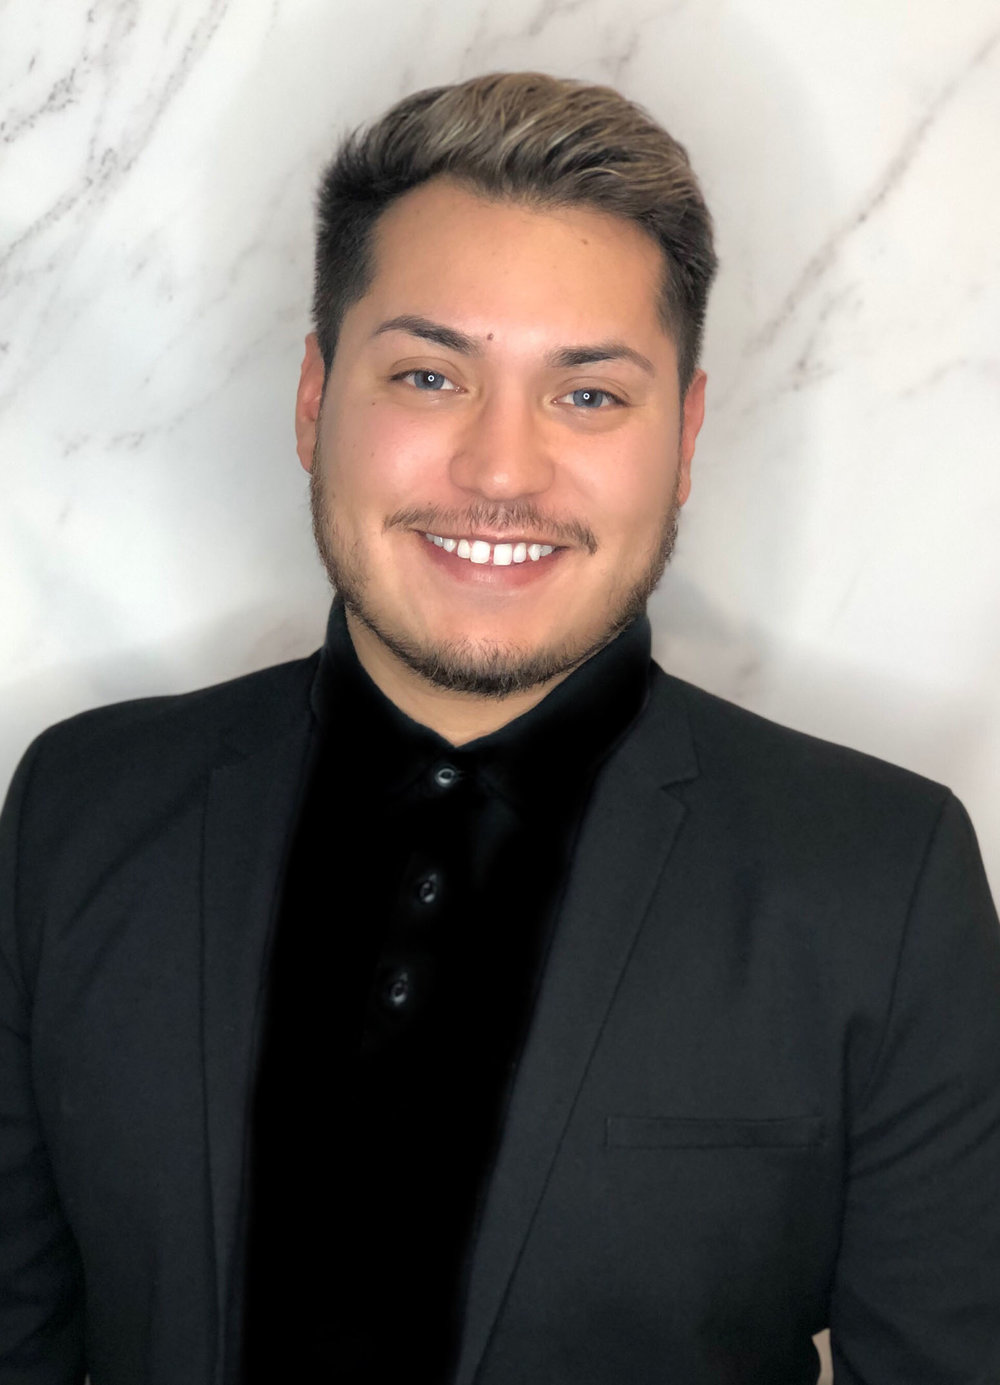 Noe believes that no one should ever hide their beauty. His specialty is creating fast go-out-ready hairstyles, whether it's for a special event or night out, he'll leave you feeling amazing from root to nail tip. He deeply values customer service, providing an ear to clients needs, not to mention his shampoos are one of a kind.